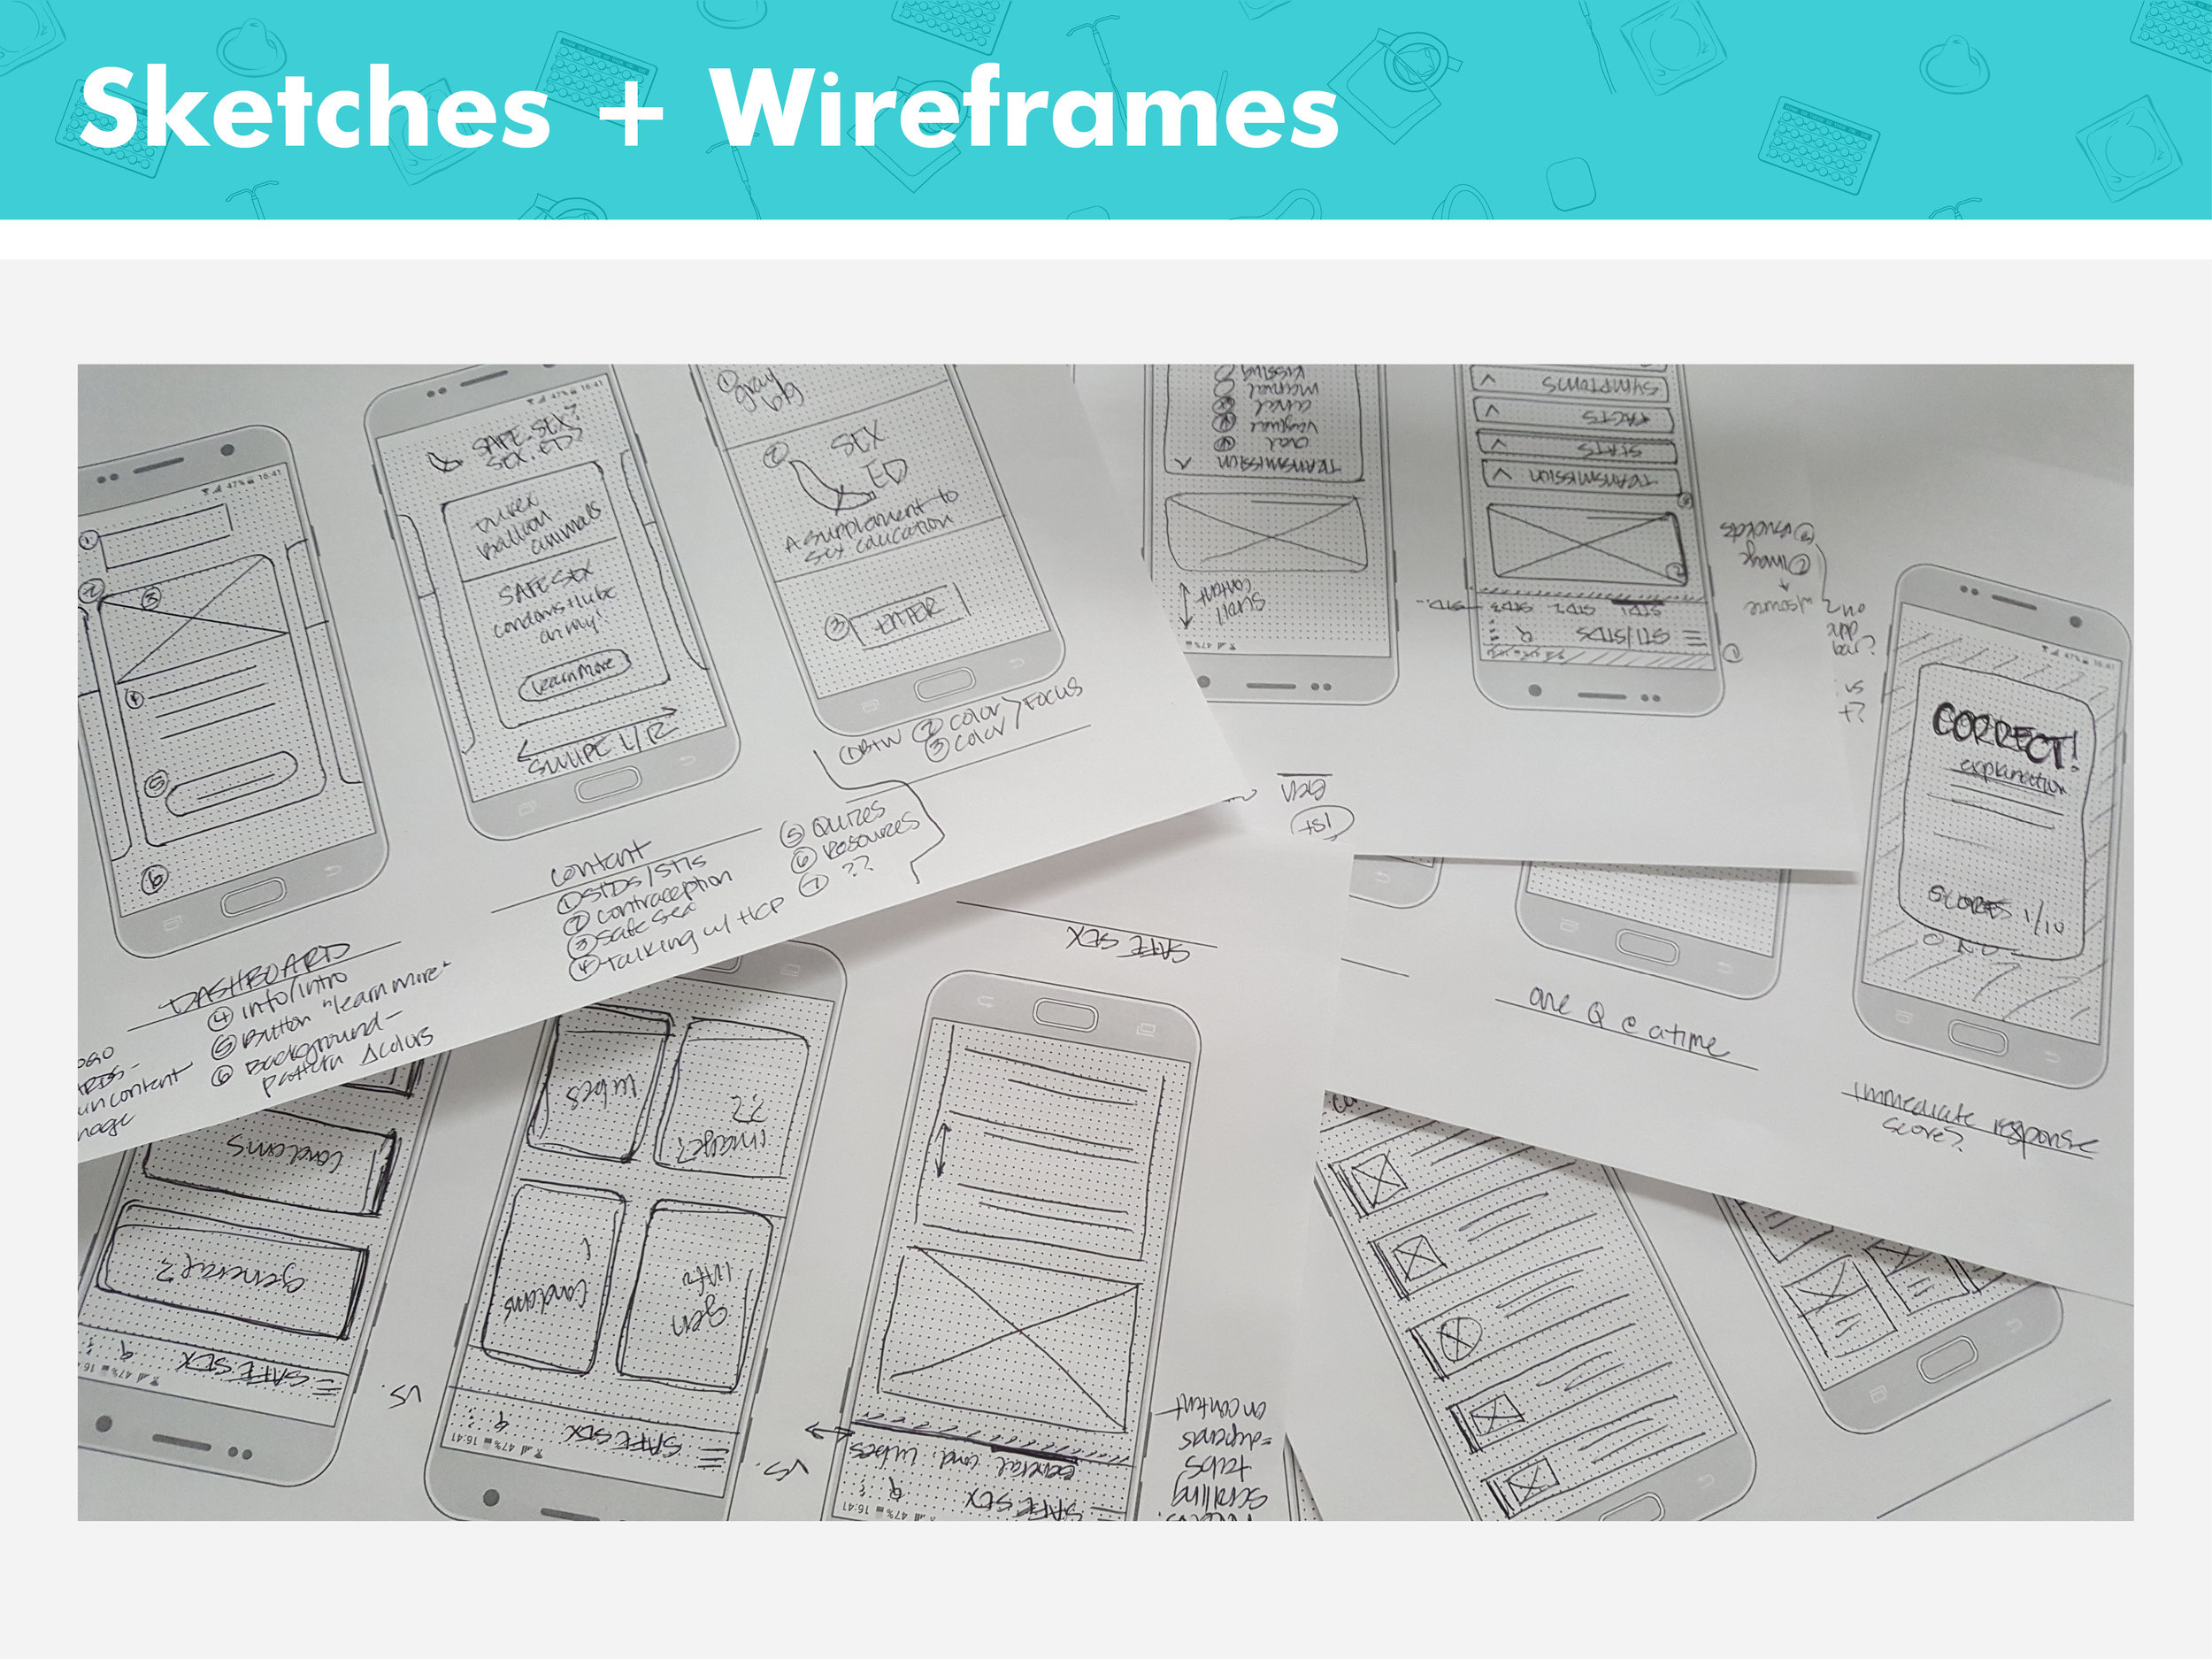 thesis - sketches and wireframes